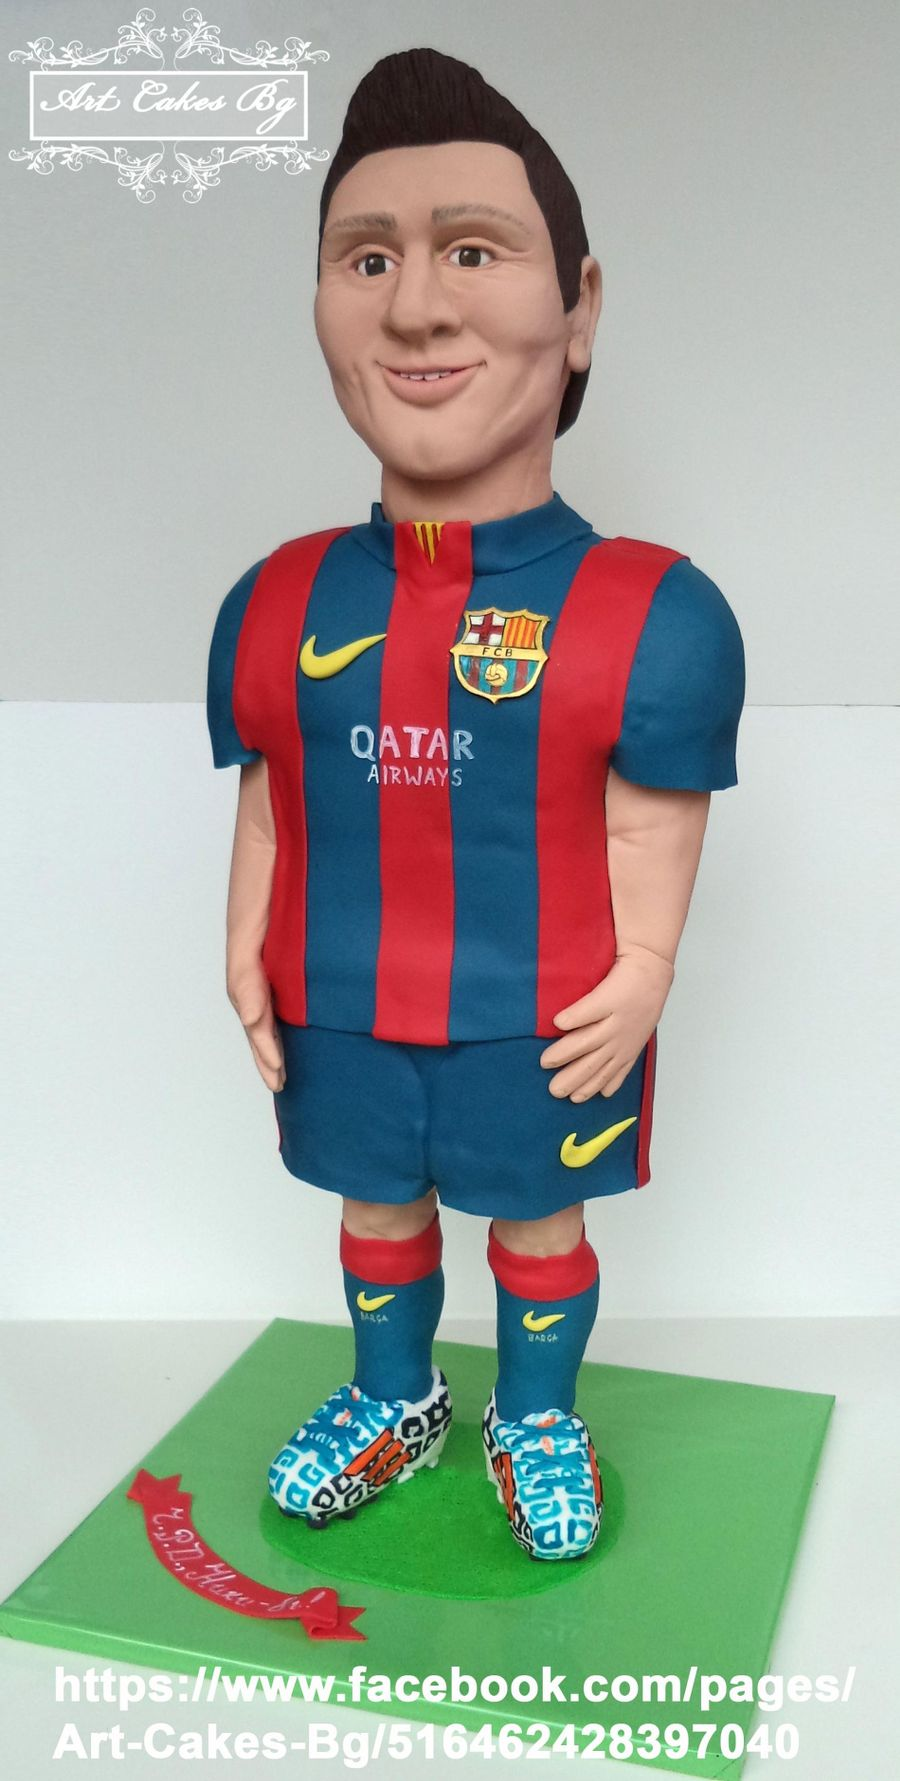 3 D Cake Sculpture Lionel Messi From Fc Barcelona! on Cake Central